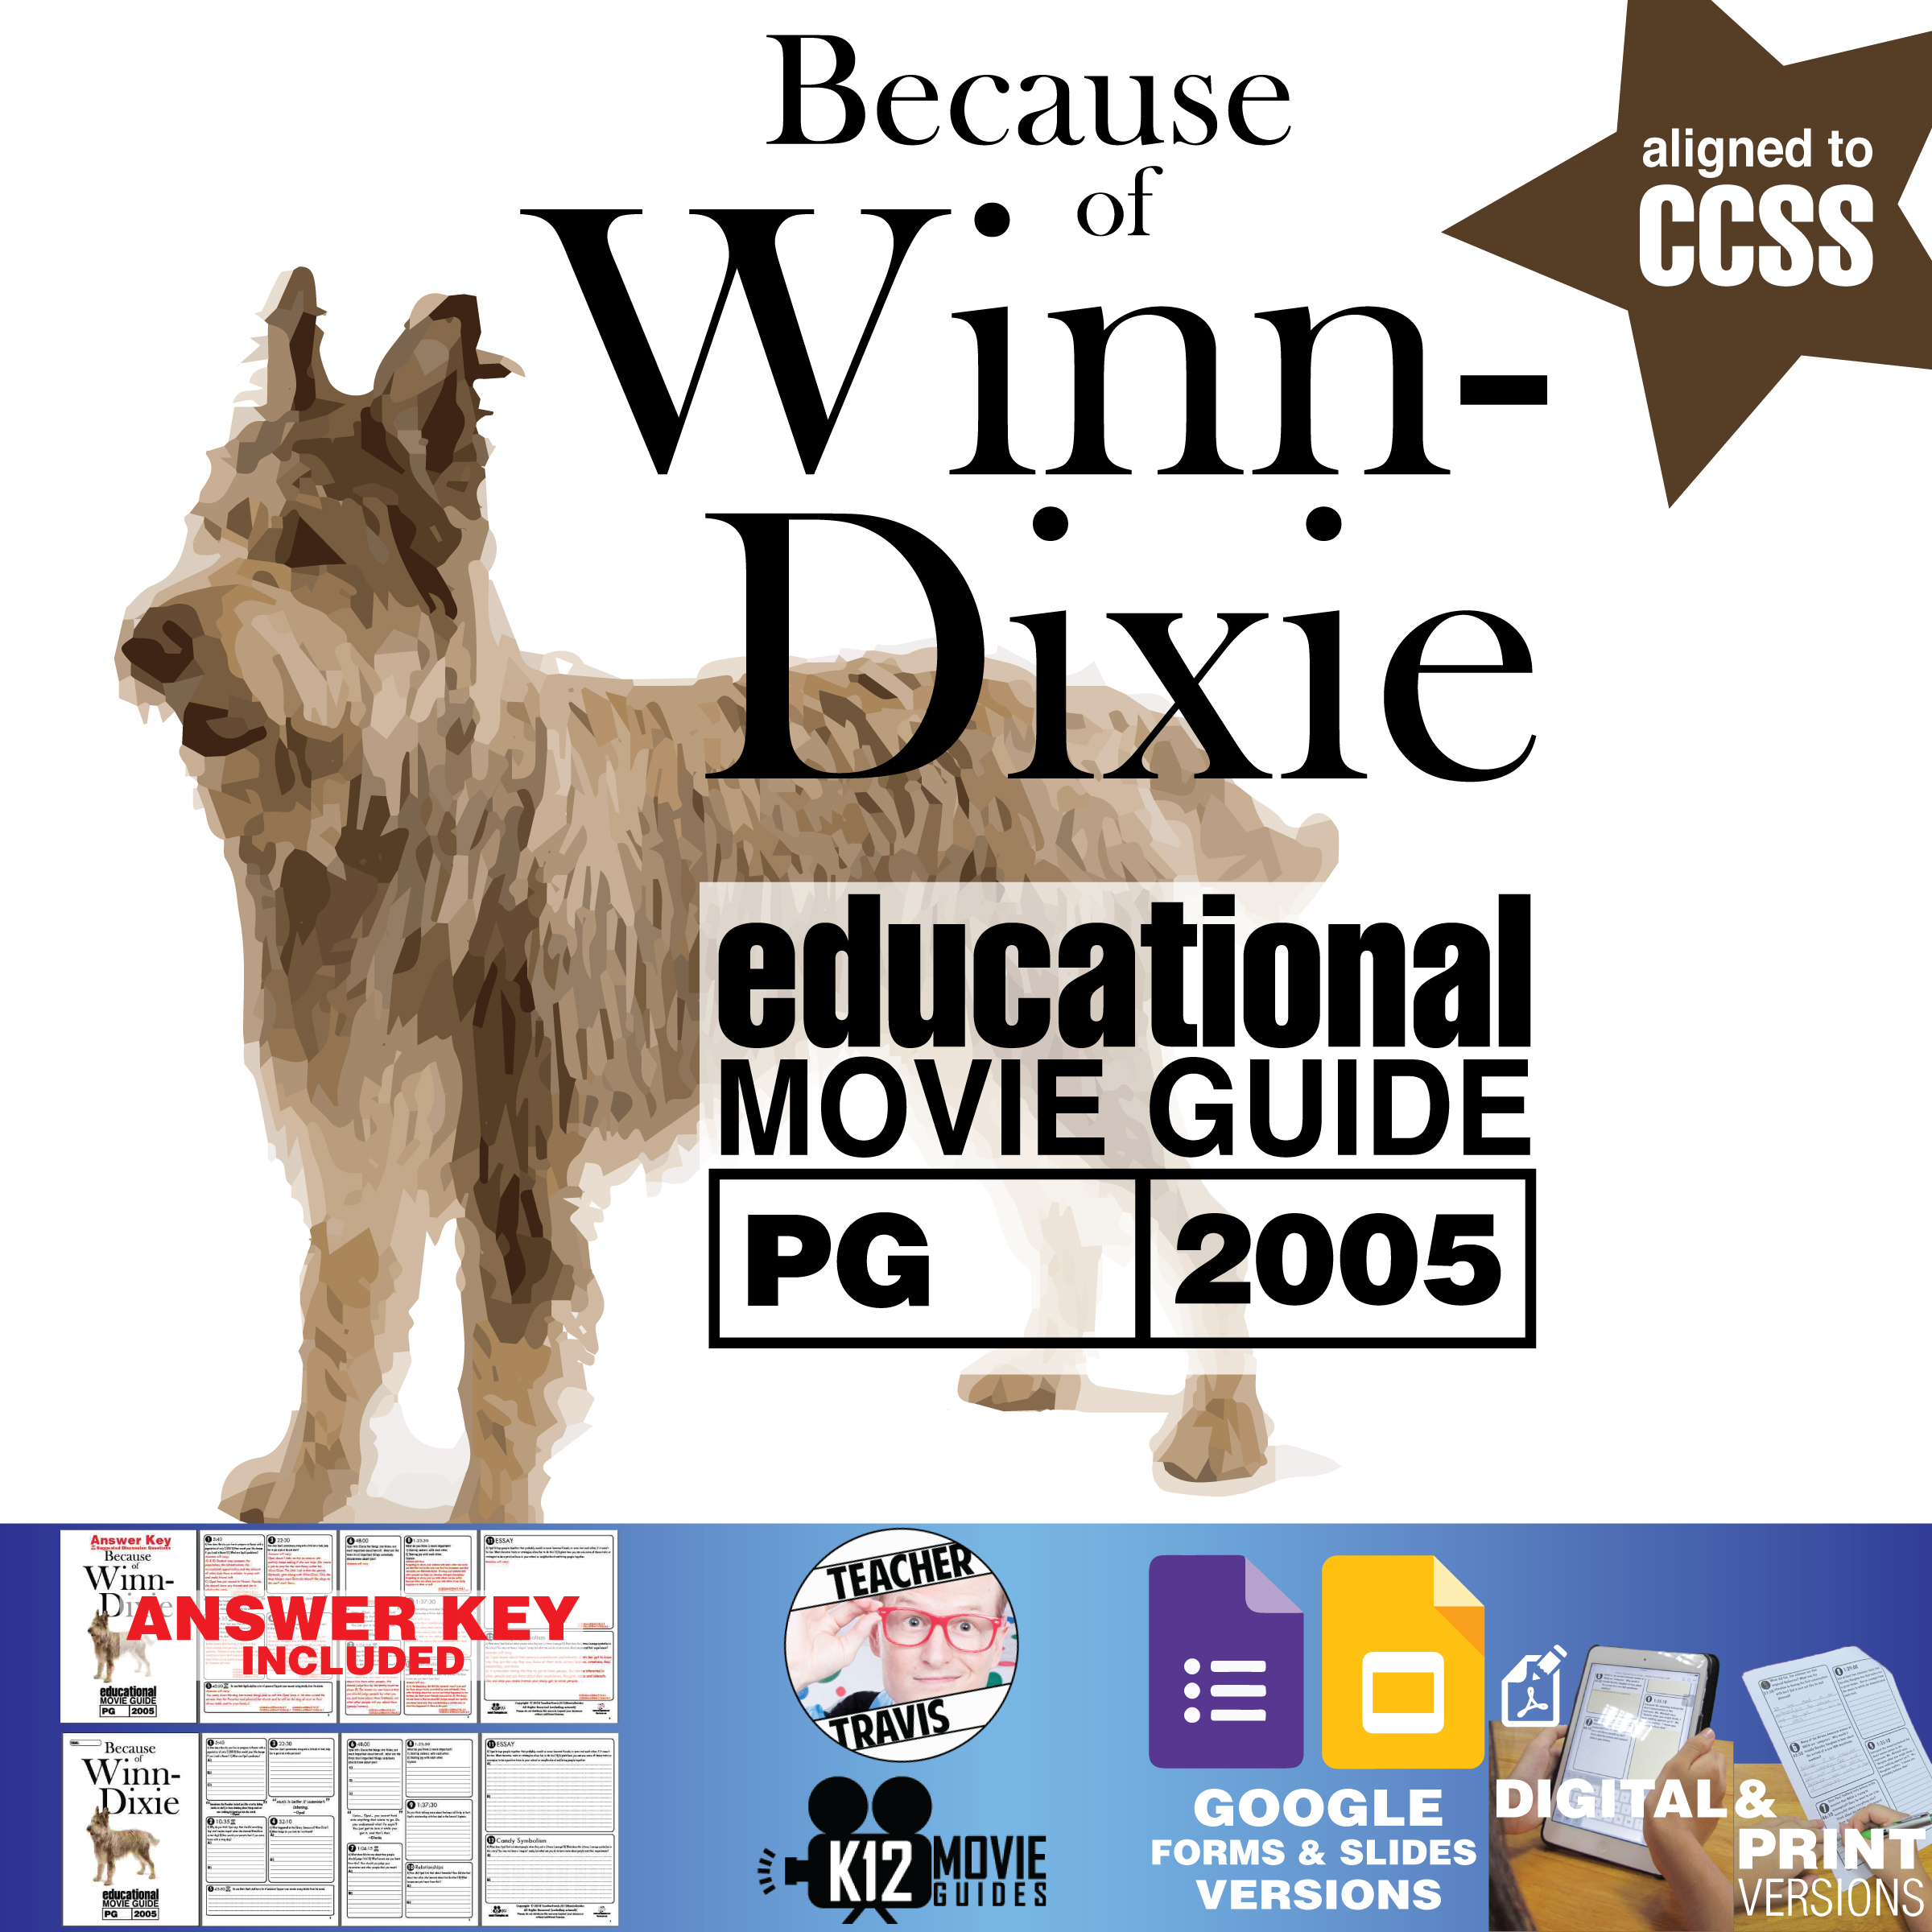 Because Of Winn Dixie Worksheets Bill Wallace  red Dog  Worksheets in addition Because of Winn Dixie Chapter Tests by Sara Goldsby   TpT together with  in addition  further Because of Winn Dixie likewise Because Of Winn Dixie Worksheets ABITLIKETHIS  Because Of Winn Dixie moreover Because Of Winn Dixie Worksheets Printable   Sanfranciscolife additionally problem solution reading worksheets – letseatapp co likewise Because of Winn Dixie Trifold   Reading Street 4th Grade Unit 1 Week besides Because of Winn Dixie Movie Guide   Questions   Worksheet  PG   2005 likewise  moreover  together with Because of Winn Dixie    lesson ideas  activities  reading levels as well Chapter Book Resources also Kate DiCamillo  Because of Winn Dixie  worksheets by Peter D   TpT moreover . on because of winn dixie worksheets